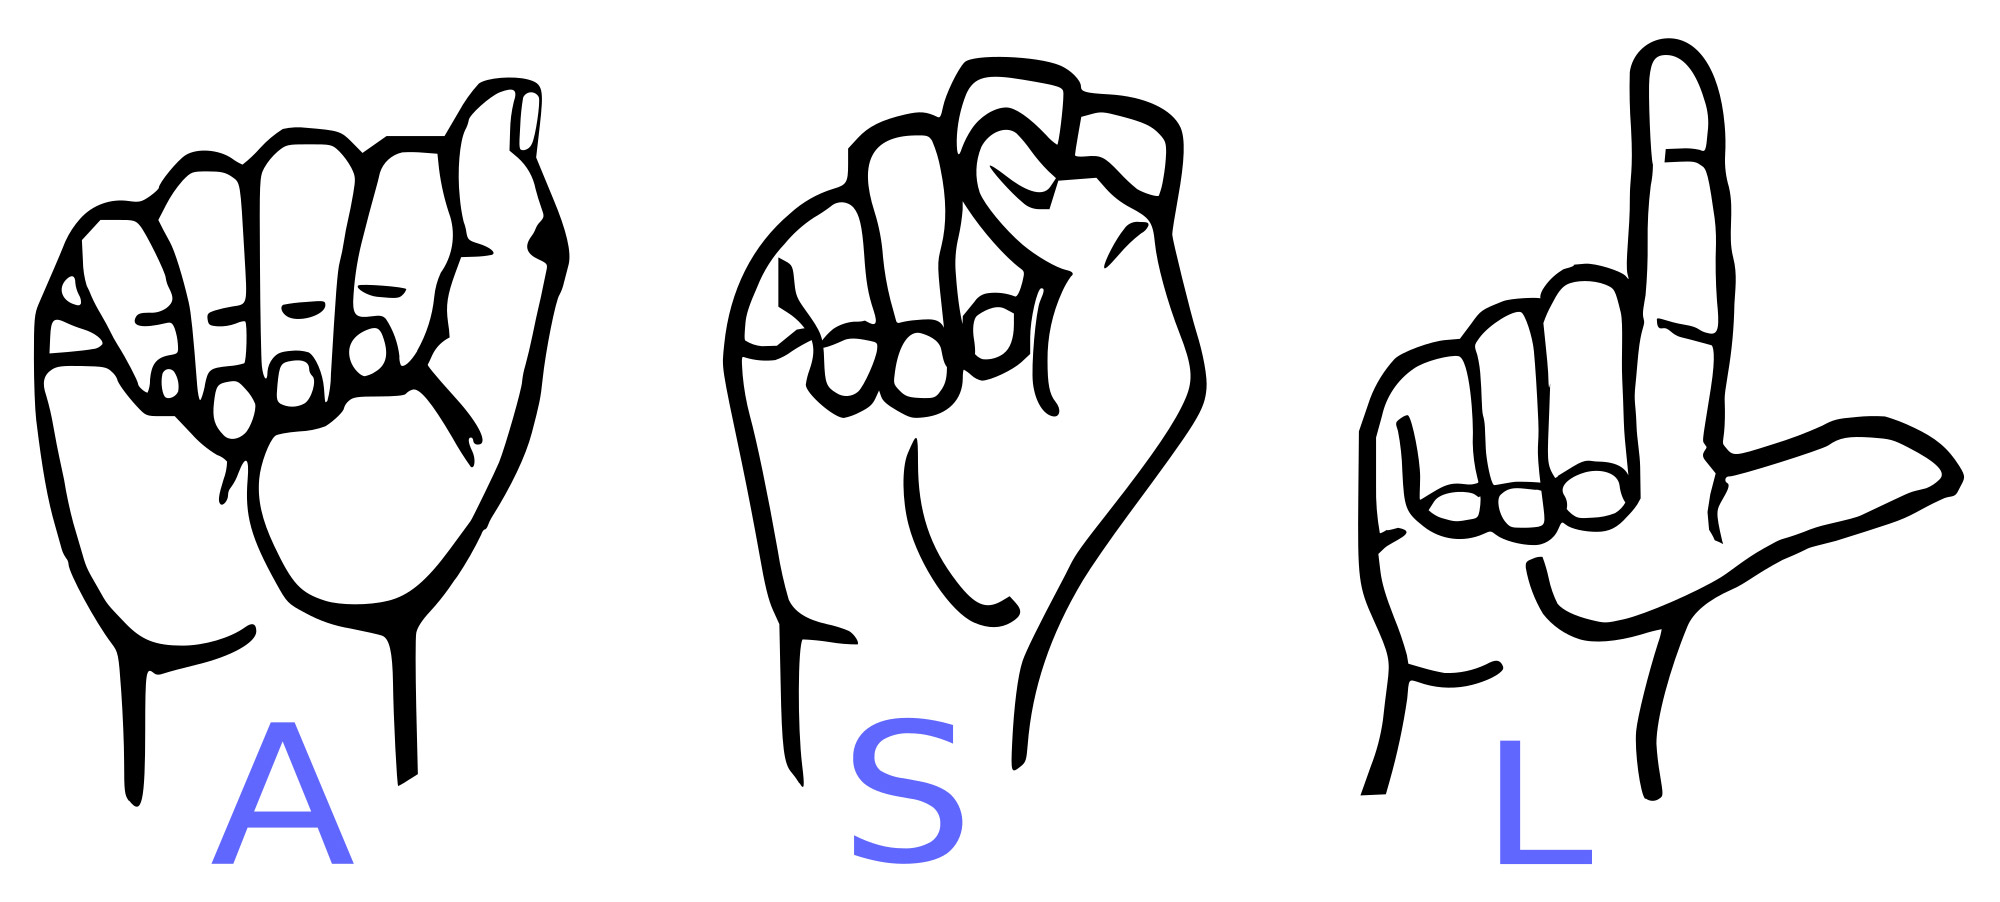 Drawing of three hands spelling out ASL in sign language.